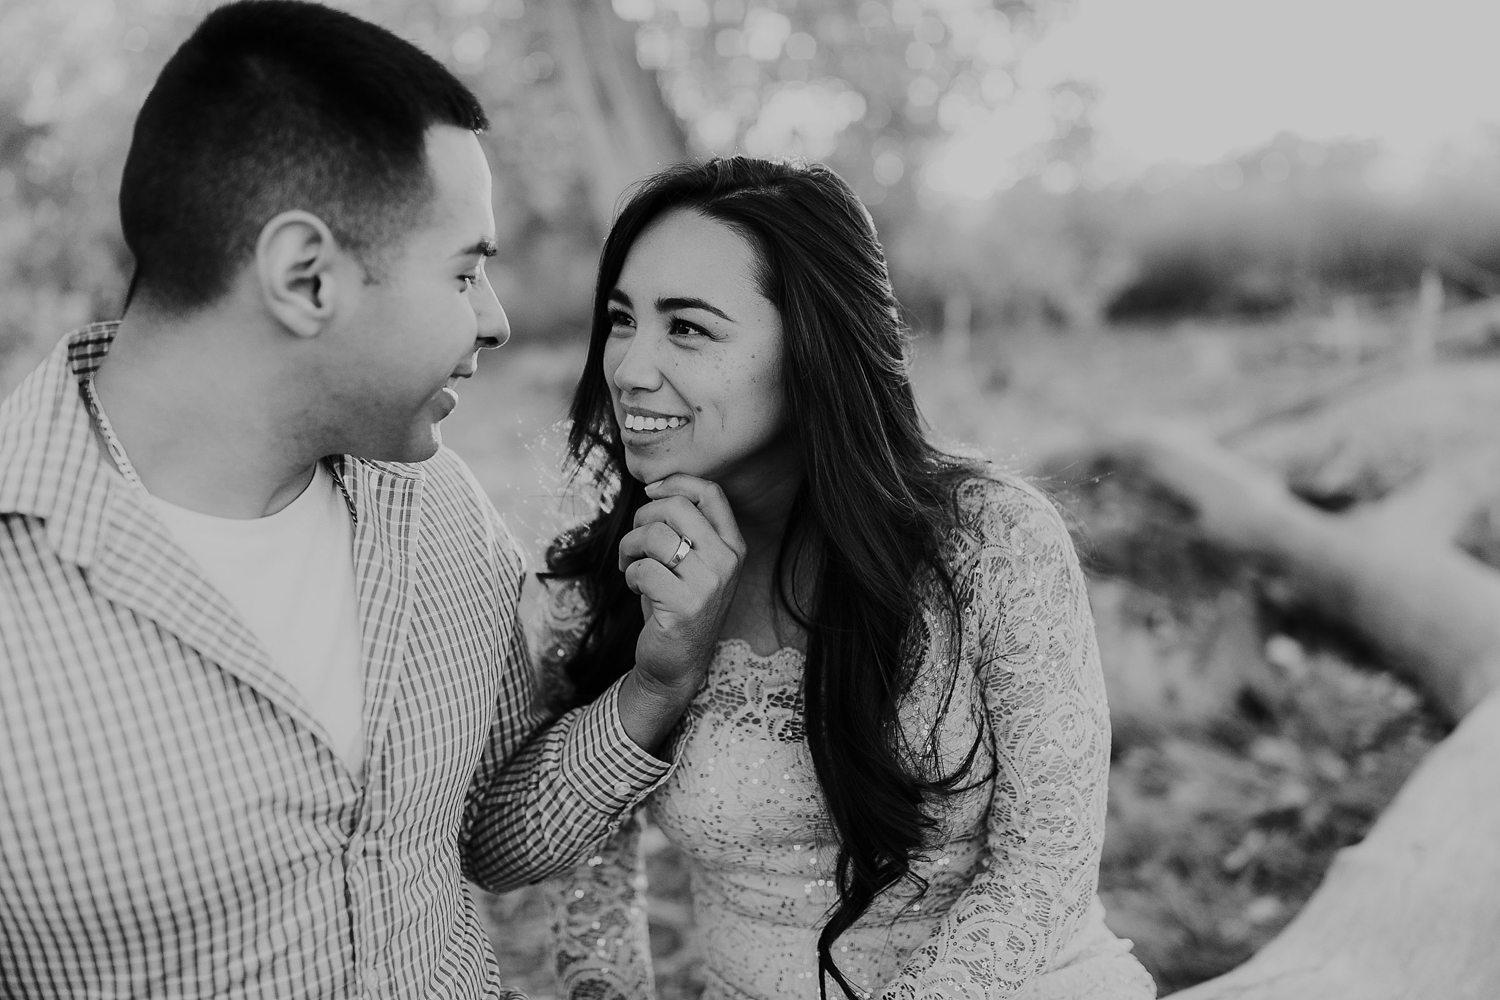 Alicia+lucia+photography+-+albuquerque+wedding+photographer+-+santa+fe+wedding+photography+-+new+mexico+wedding+photographer+-+albuquerque+winter+engagement+session_0004.jpg